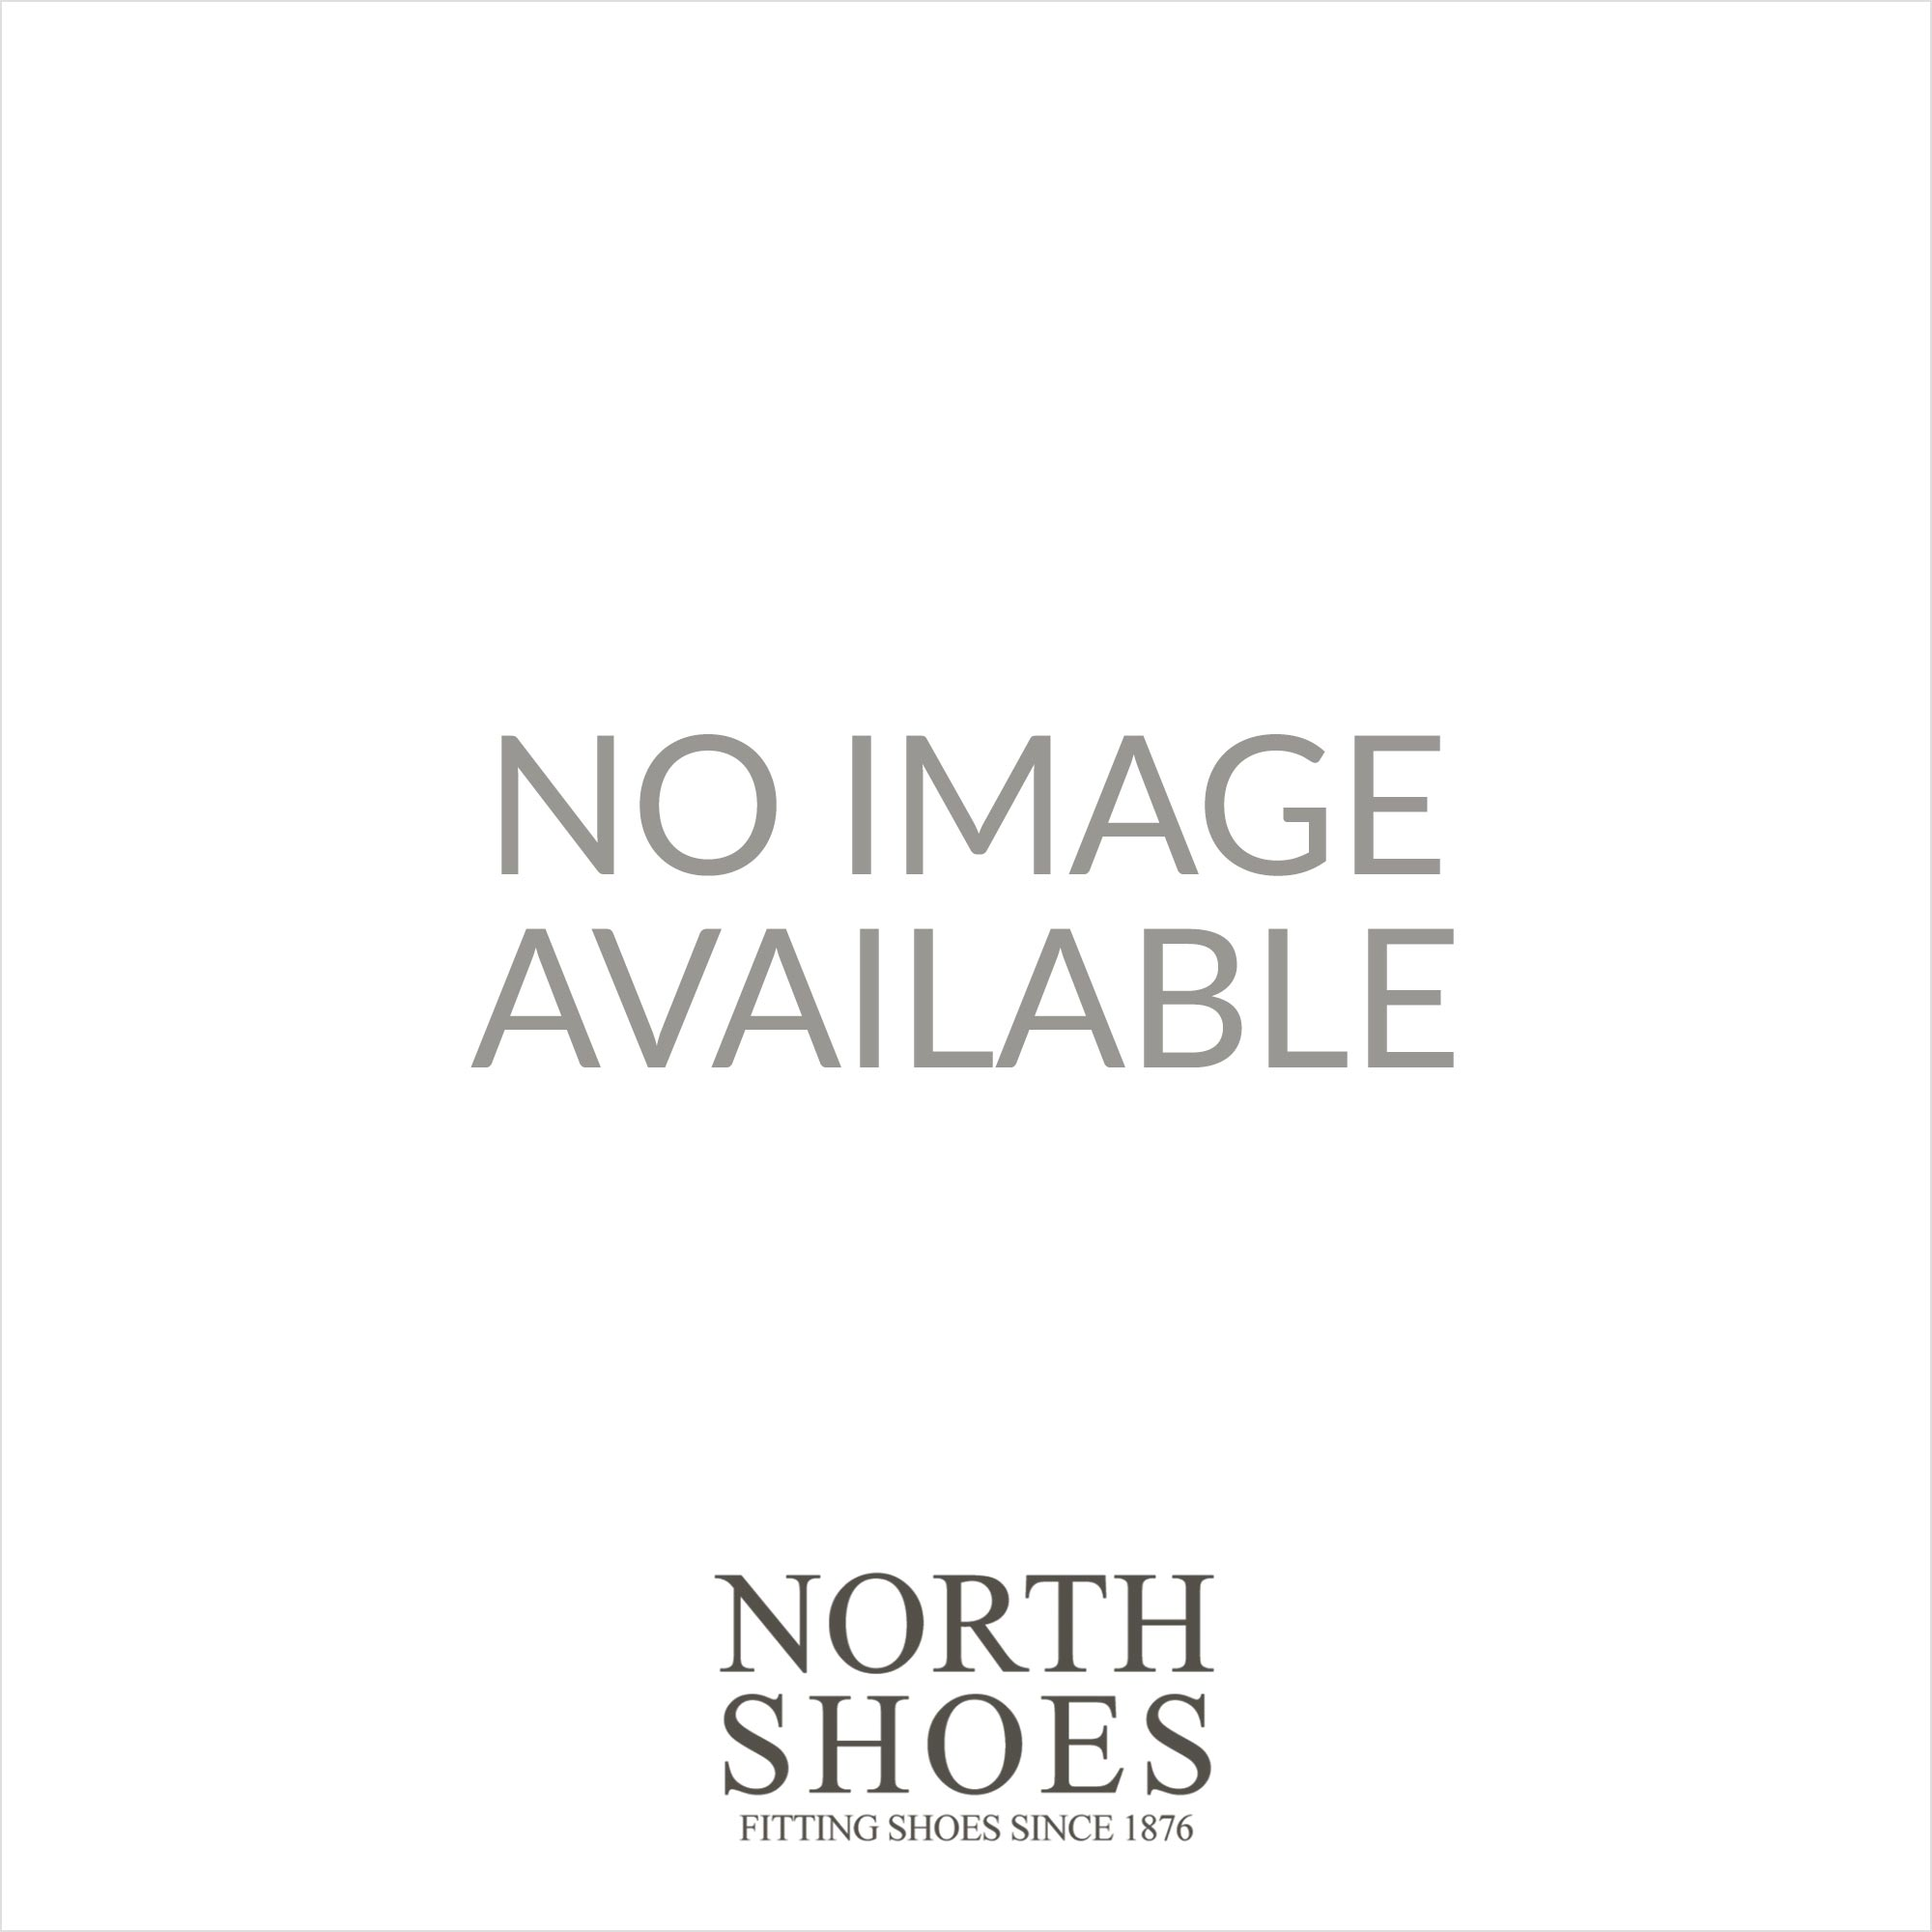 0cb74606b366 Clarks Rusty Rizz Blush Pink Leather Womens Sling Back Wedge Sandals -  Clarks from North Shoes UK